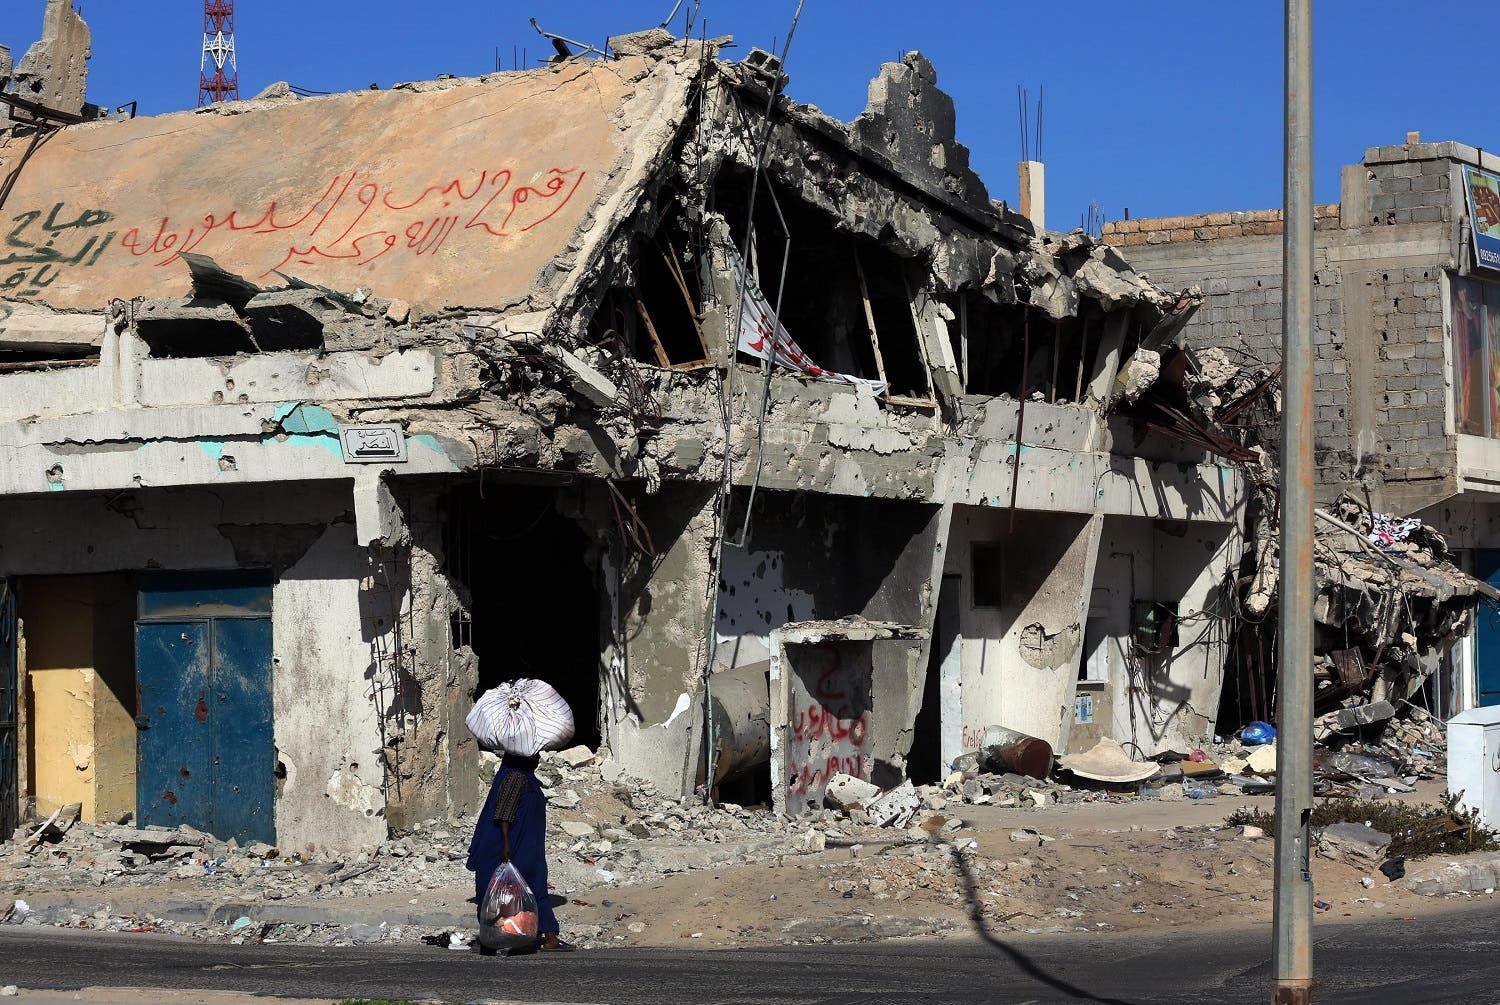 A Libyan woman walks past the rubble of a building in the Mediterranean city of Sirte. (AFP)